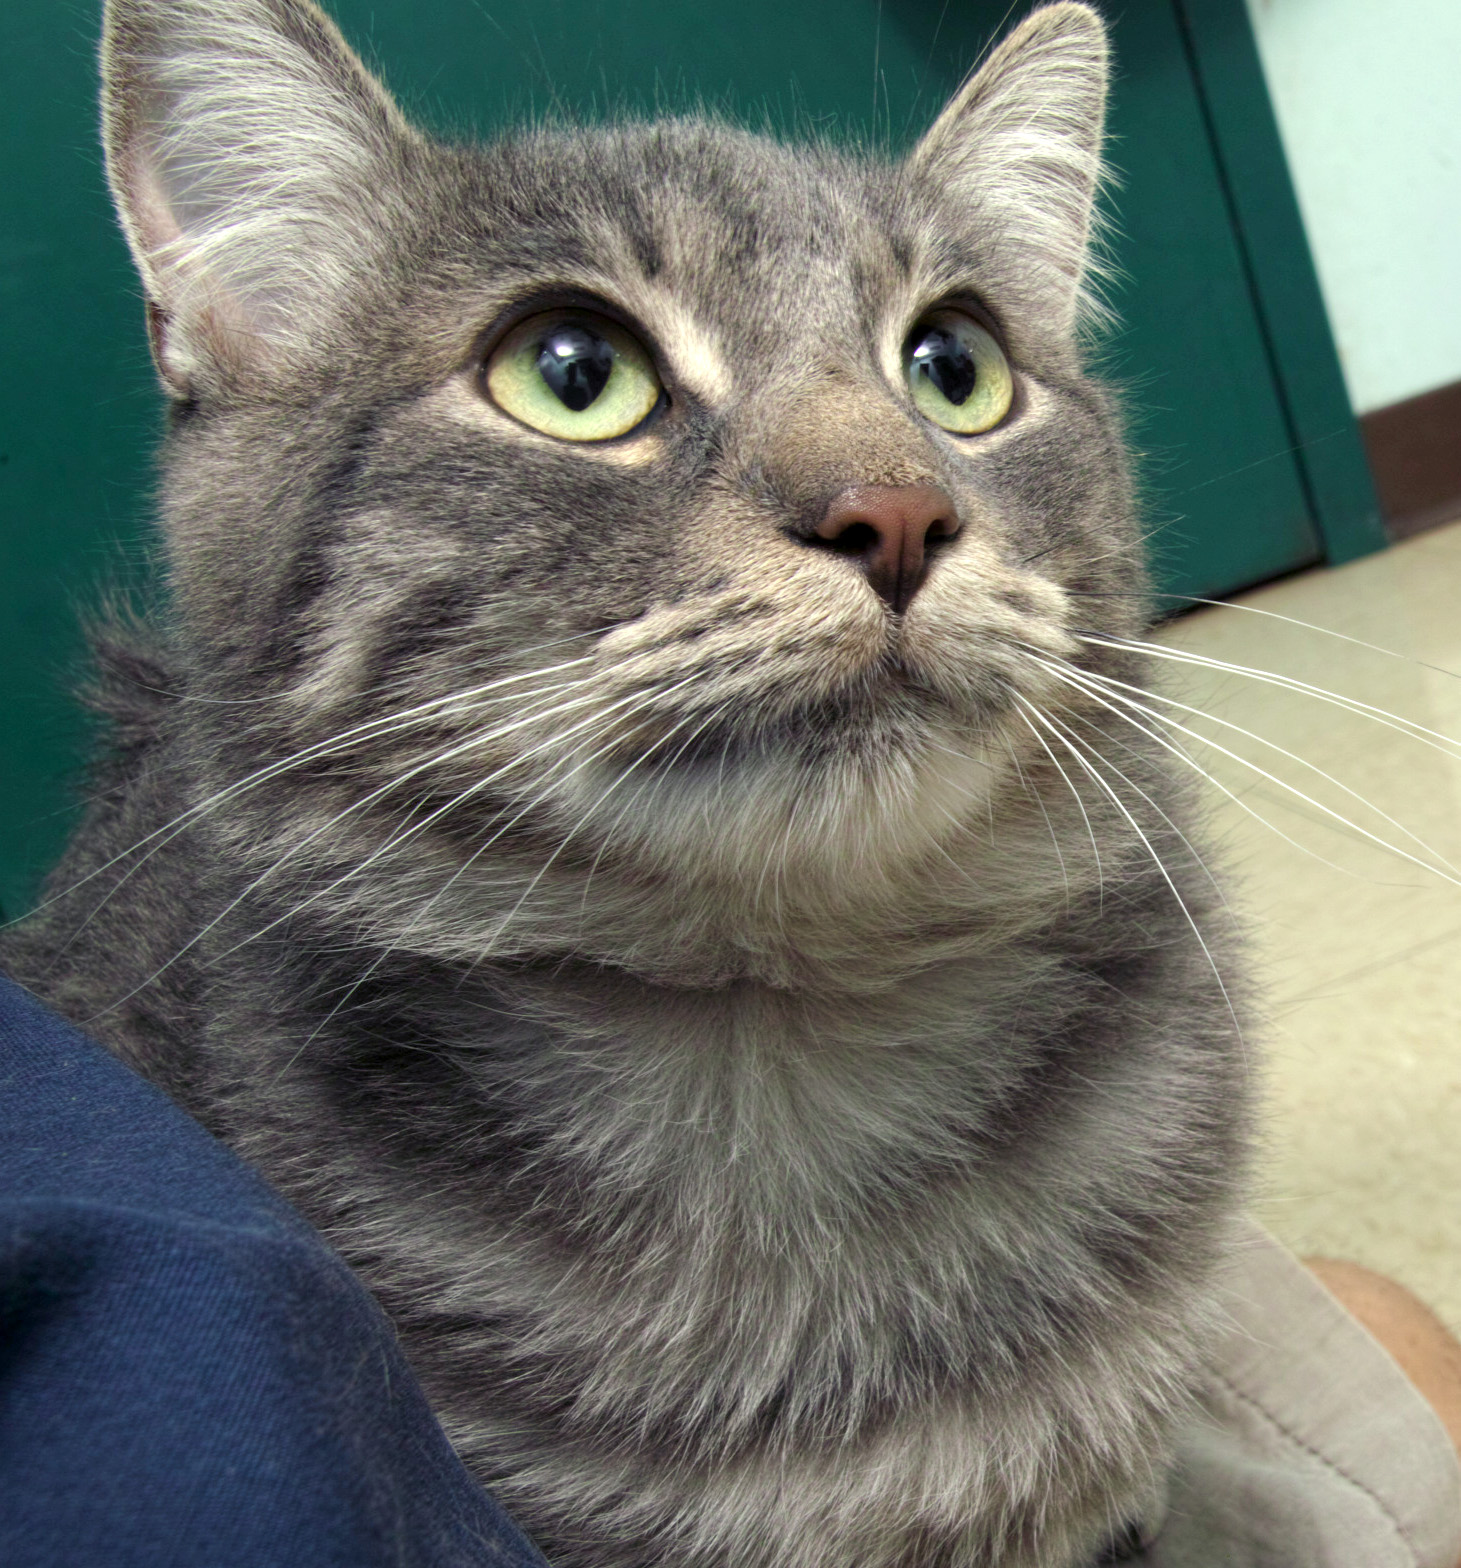 Randy came to HAWS as a stray--a nice person found him under a car and brought him here. He is a little over a year old and as sweet as can be! He would love for you to pet him all day long!